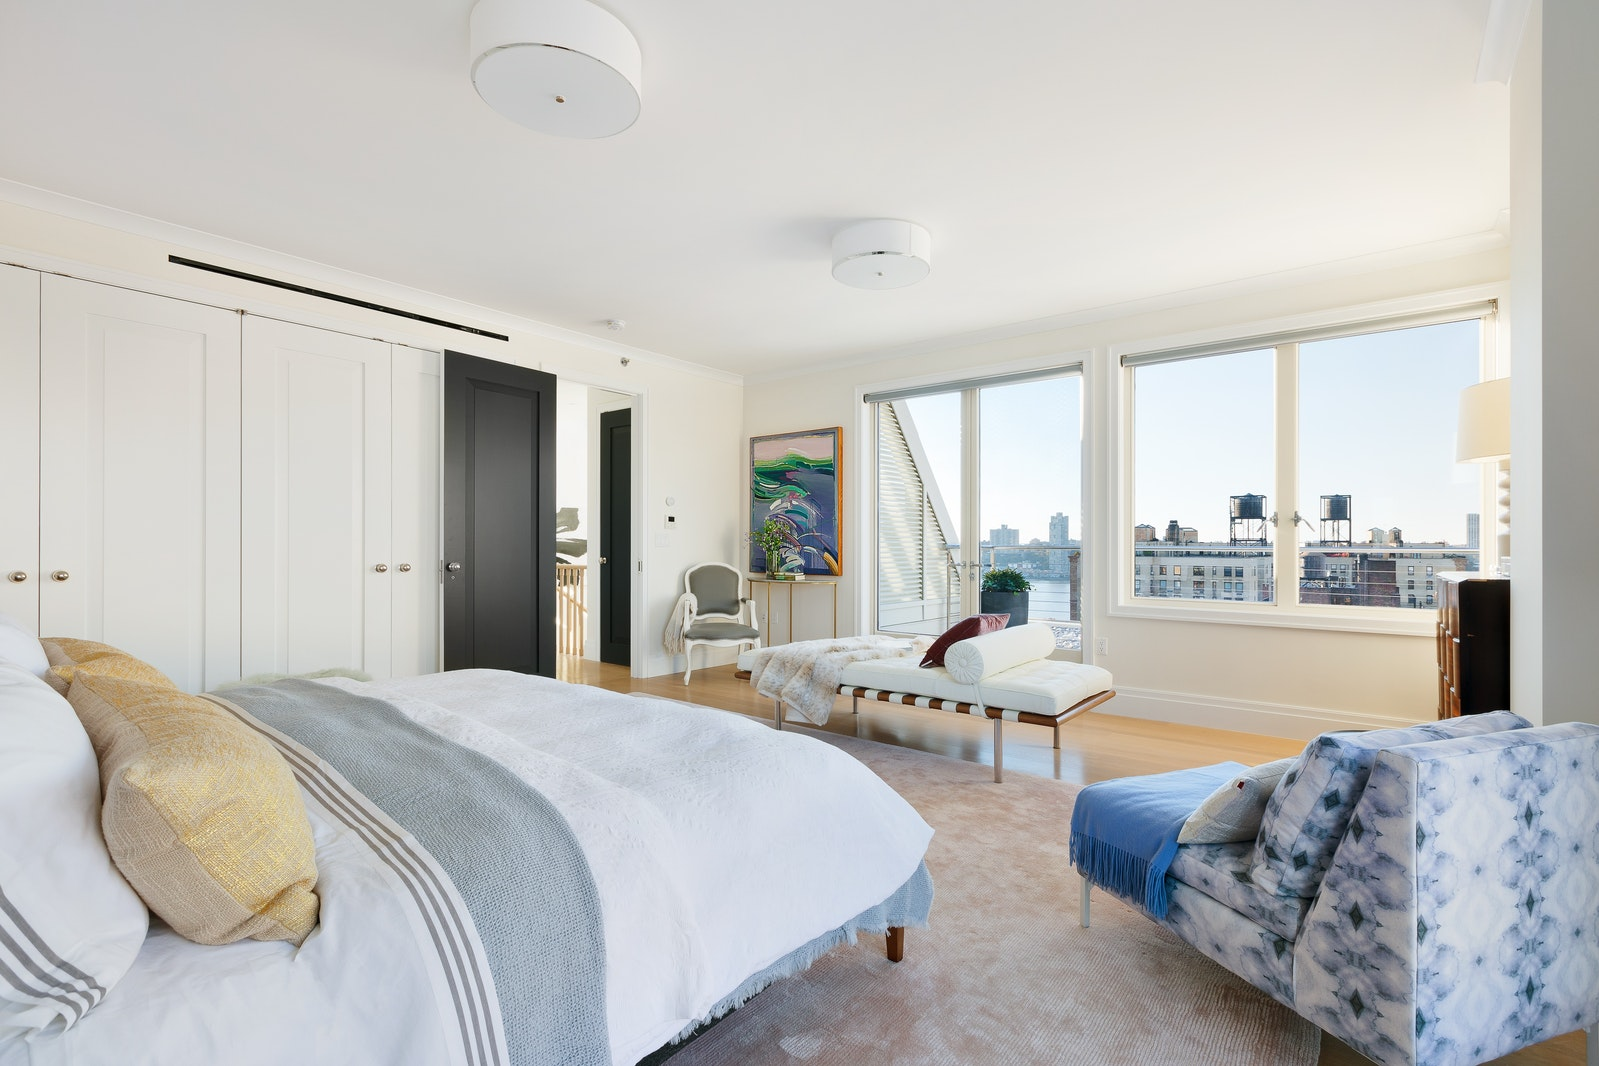 498 West End Avenue Ph, Upper West Side, NYC, 10024, $14,950,000, Property For Sale, Halstead Real Estate, Photo 15